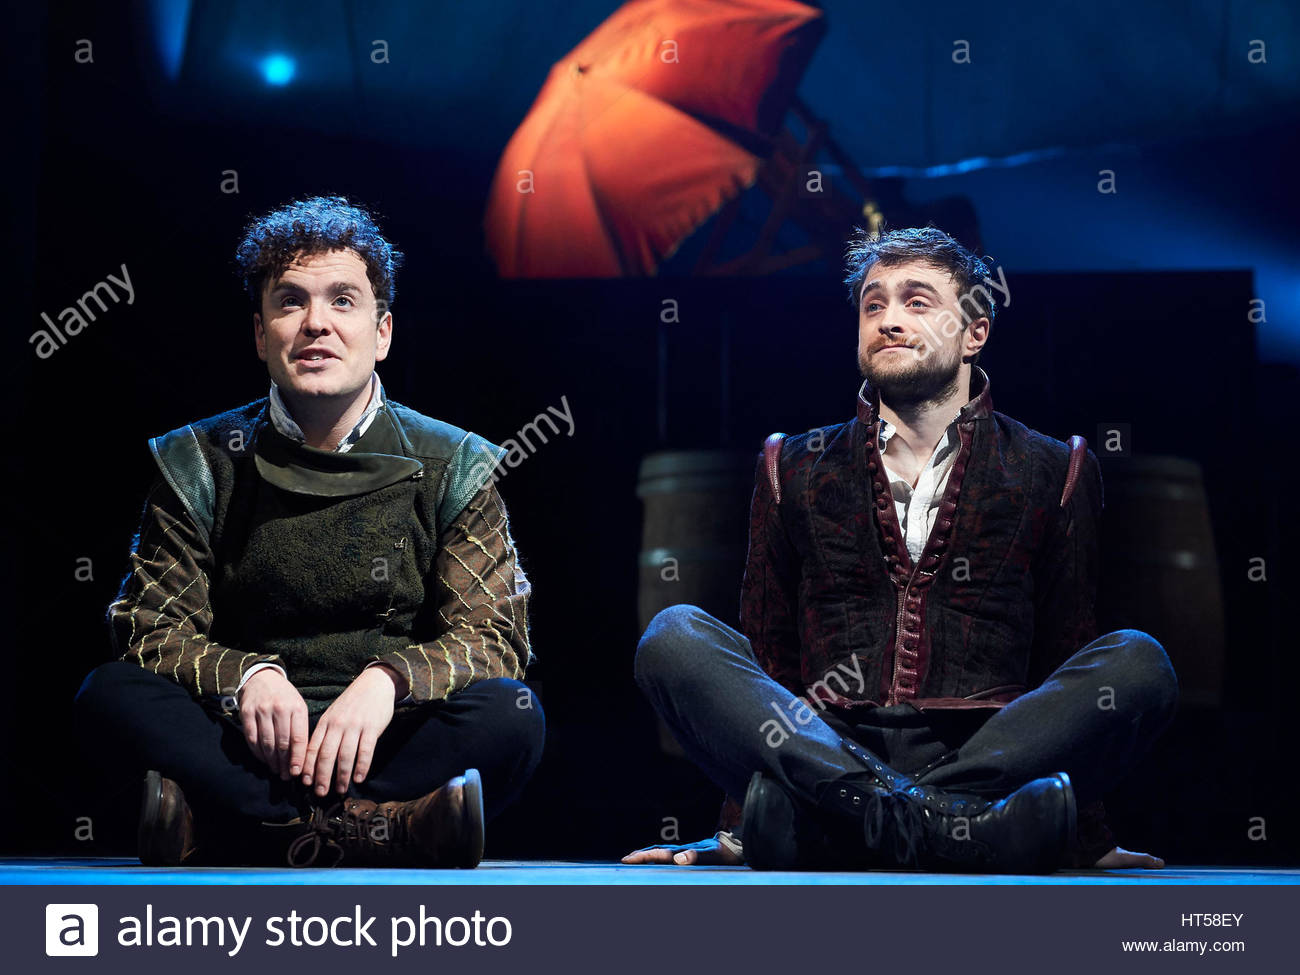 Rosencrantz and Guildenstern by Tom Stoppard, directed by David Leveaux. With Joshua McGuire as Guildenstern, Daniel - Stock Image